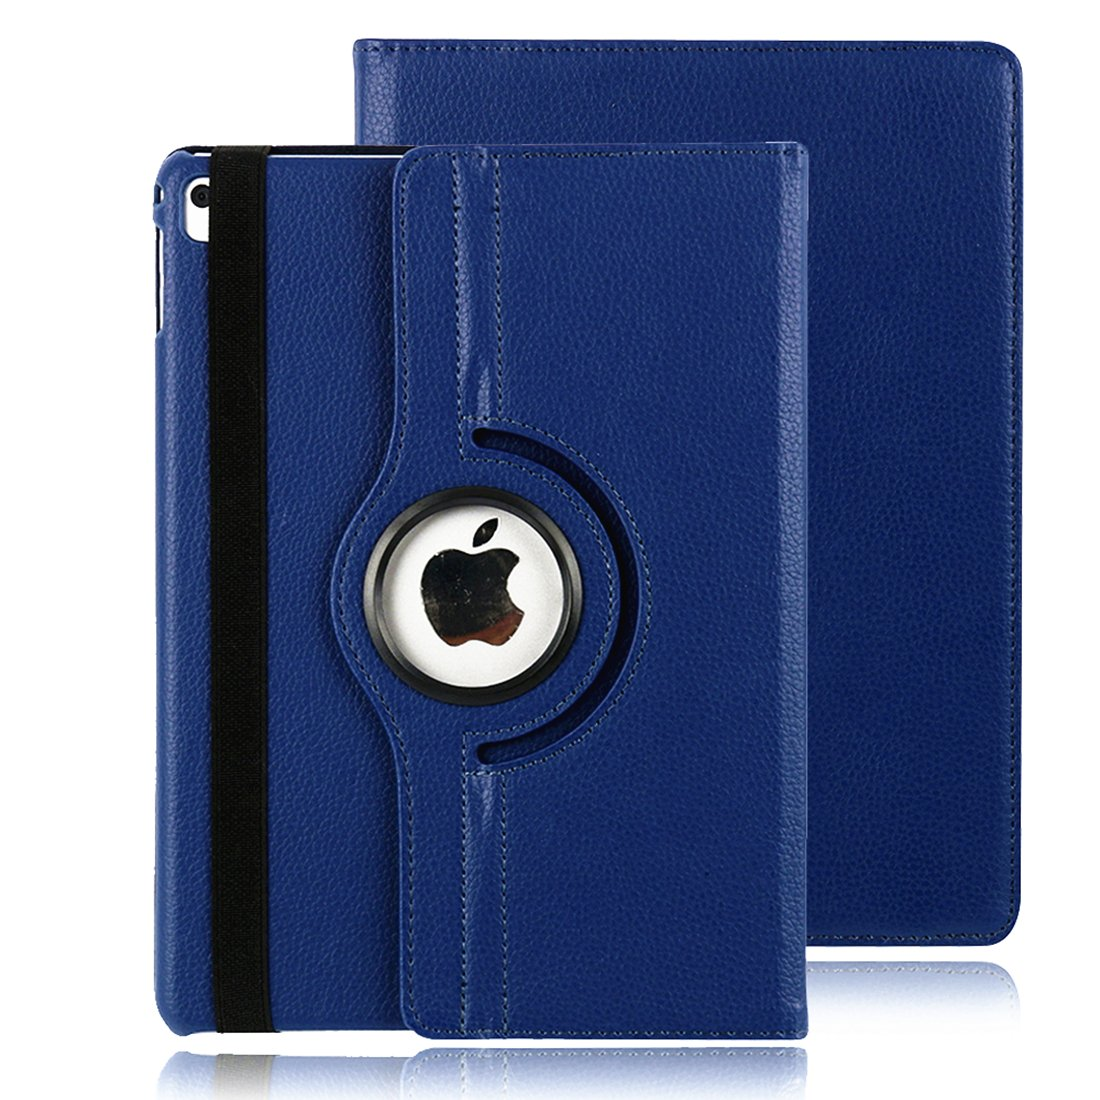 Xiaoai Apple iPad Pro 10.5 Case,360 Degrees Rotating Multi Angles Screen Protective Stand with Auto Sleep/Wake Smart Cover for iPad Pro 10.5 inch 2017 Released (Blue)